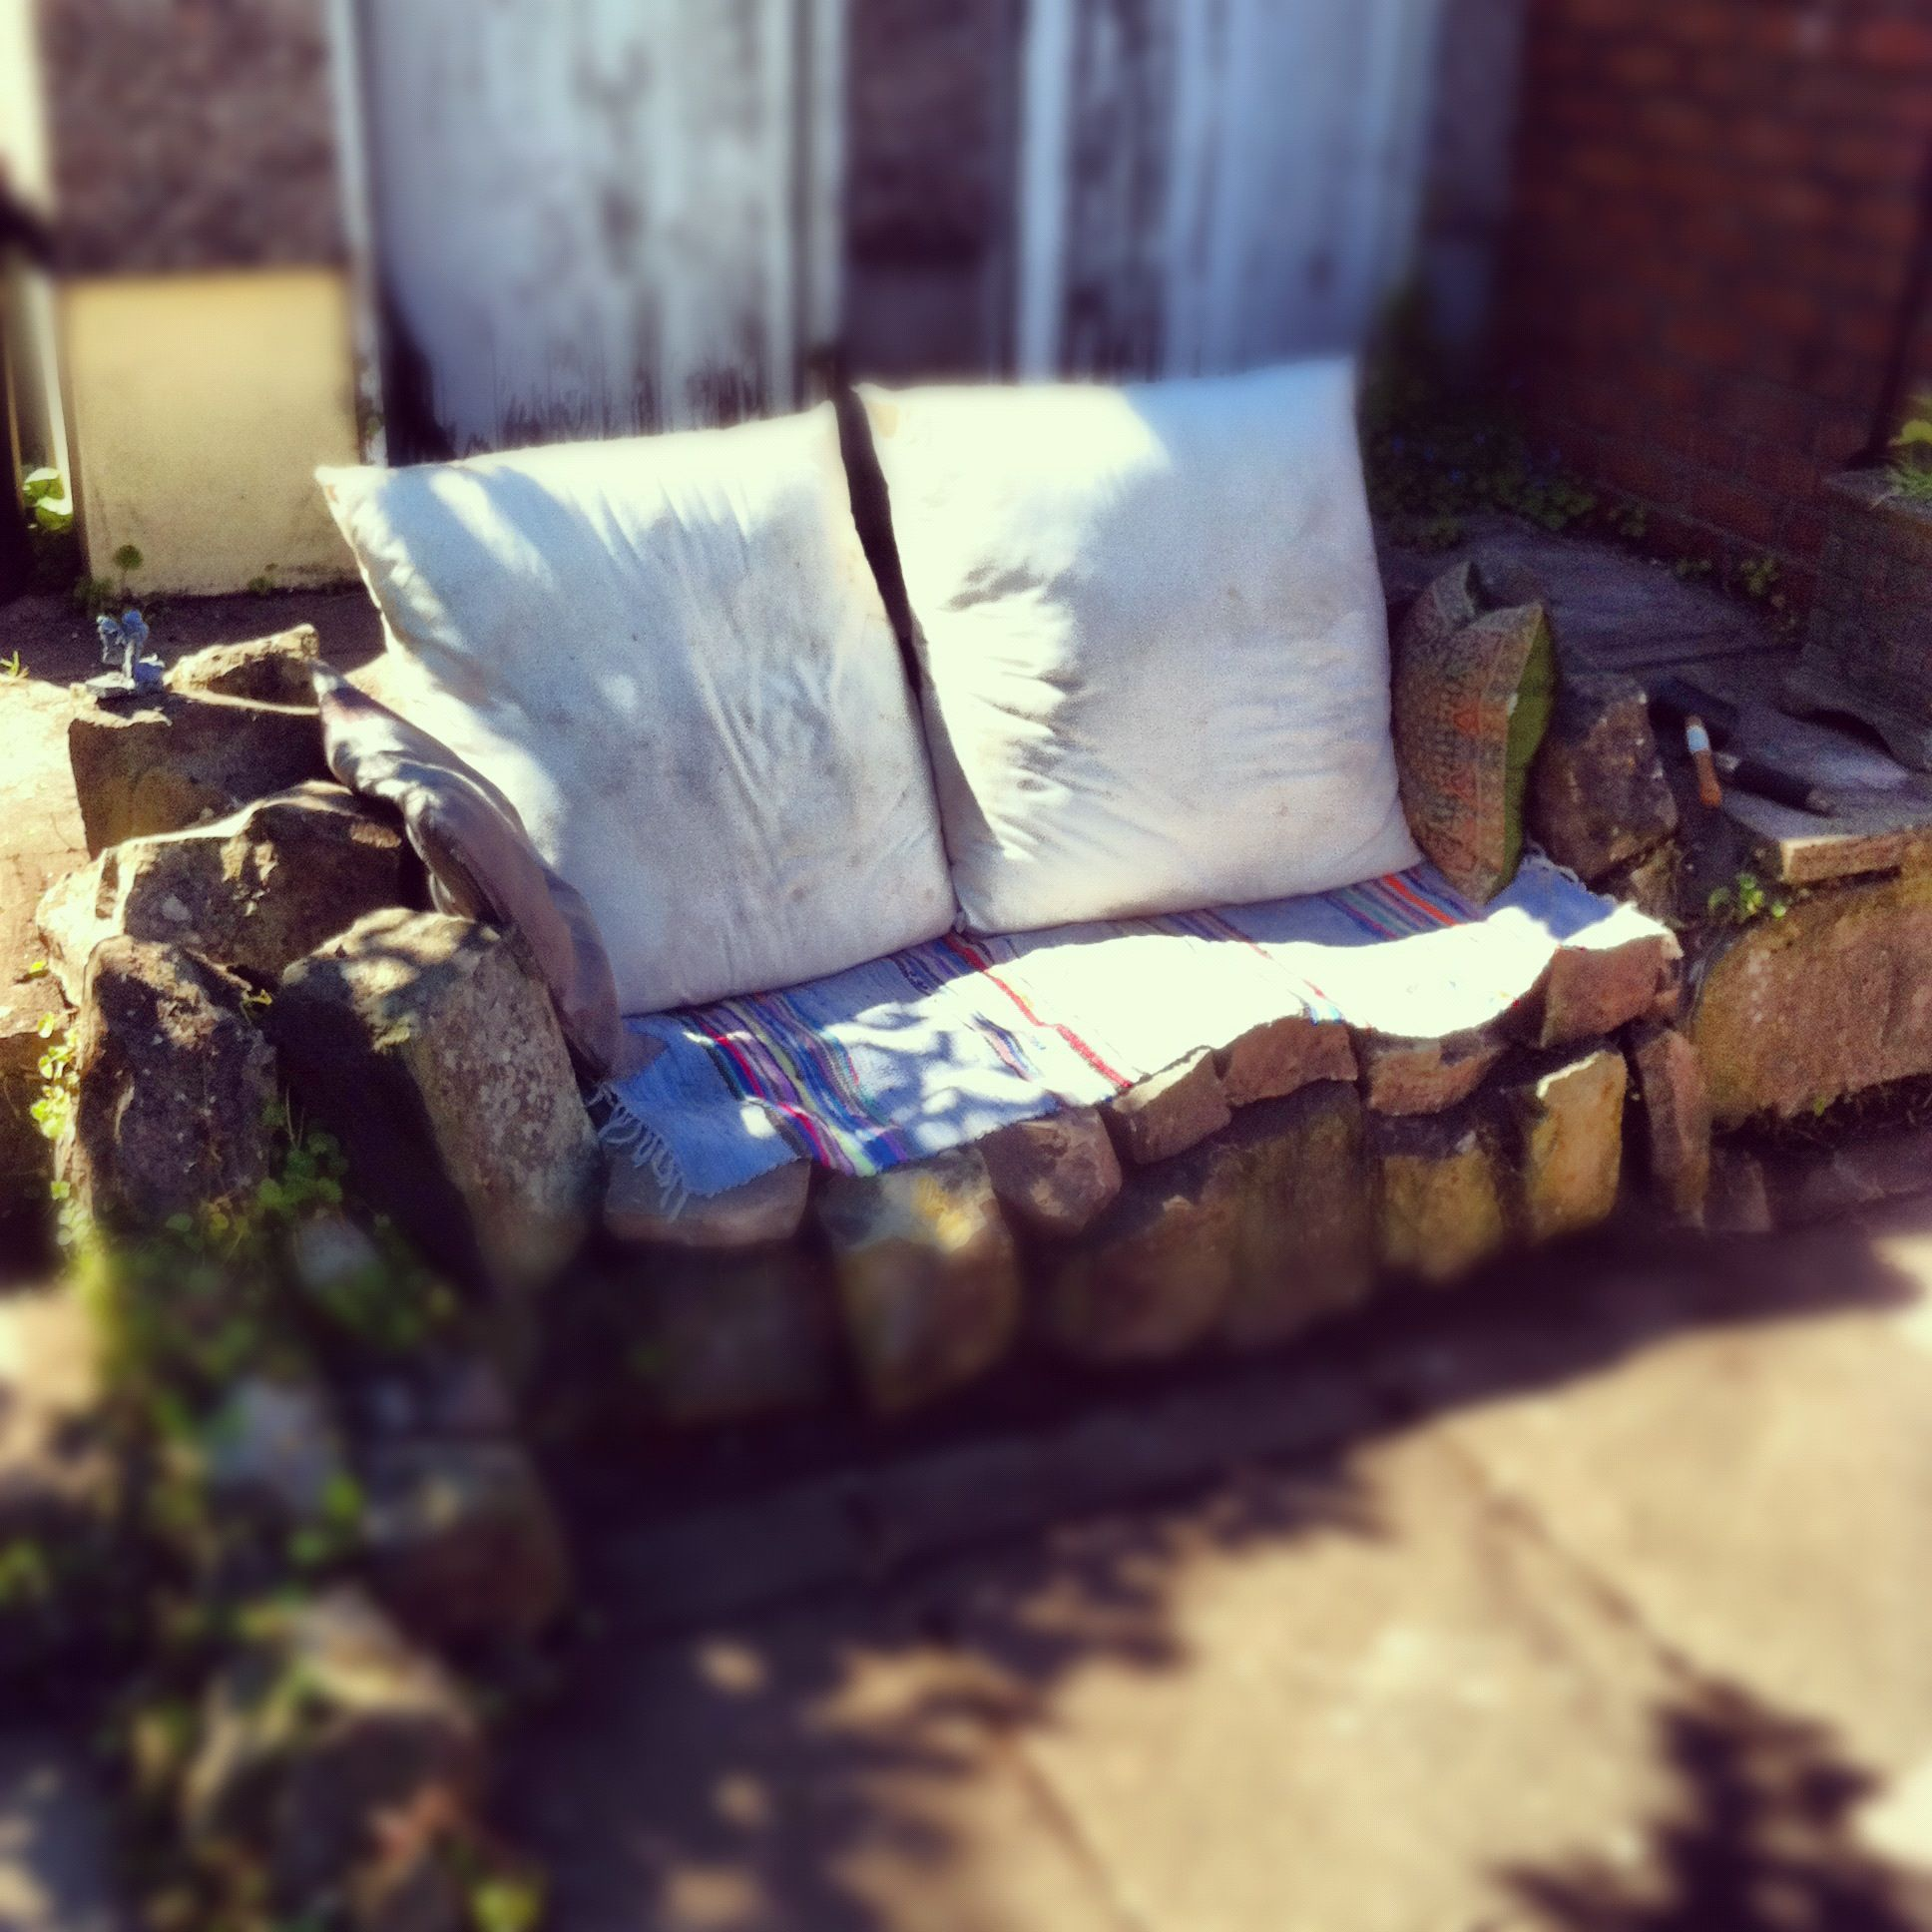 Stop weeds in flower beds - I Turned An Old Flower Bed Into A Comfy Sofa In The Summer Just Cover